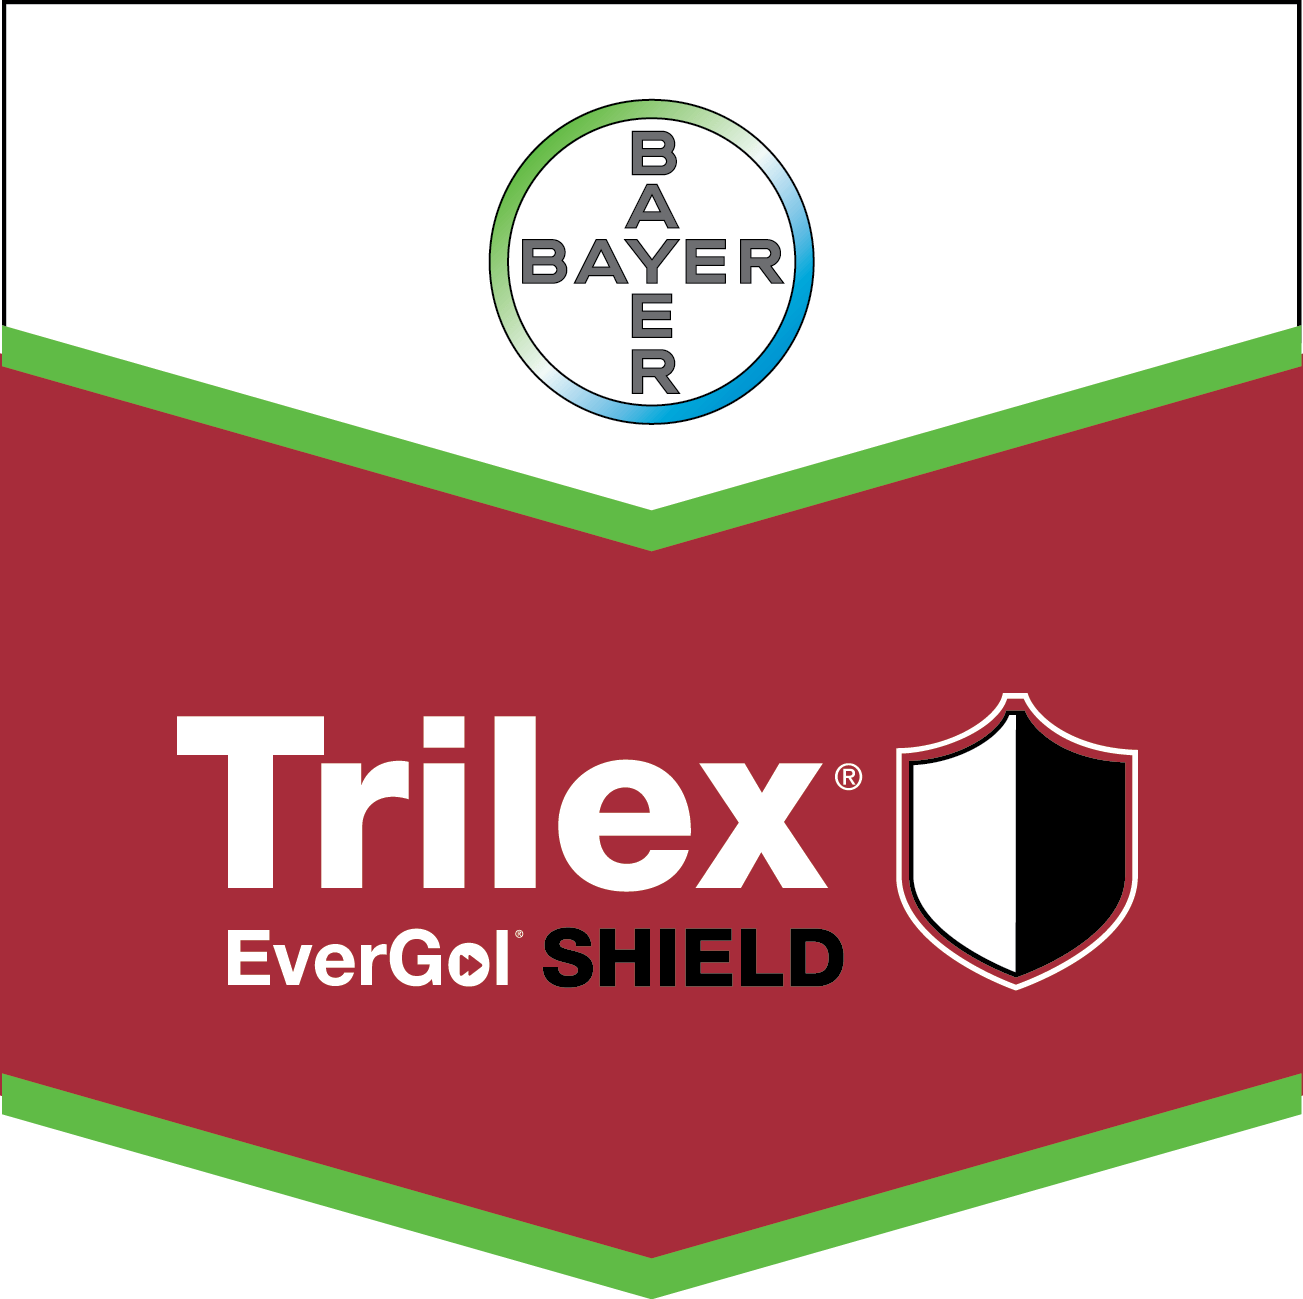 Trilex EverGol SHIELD